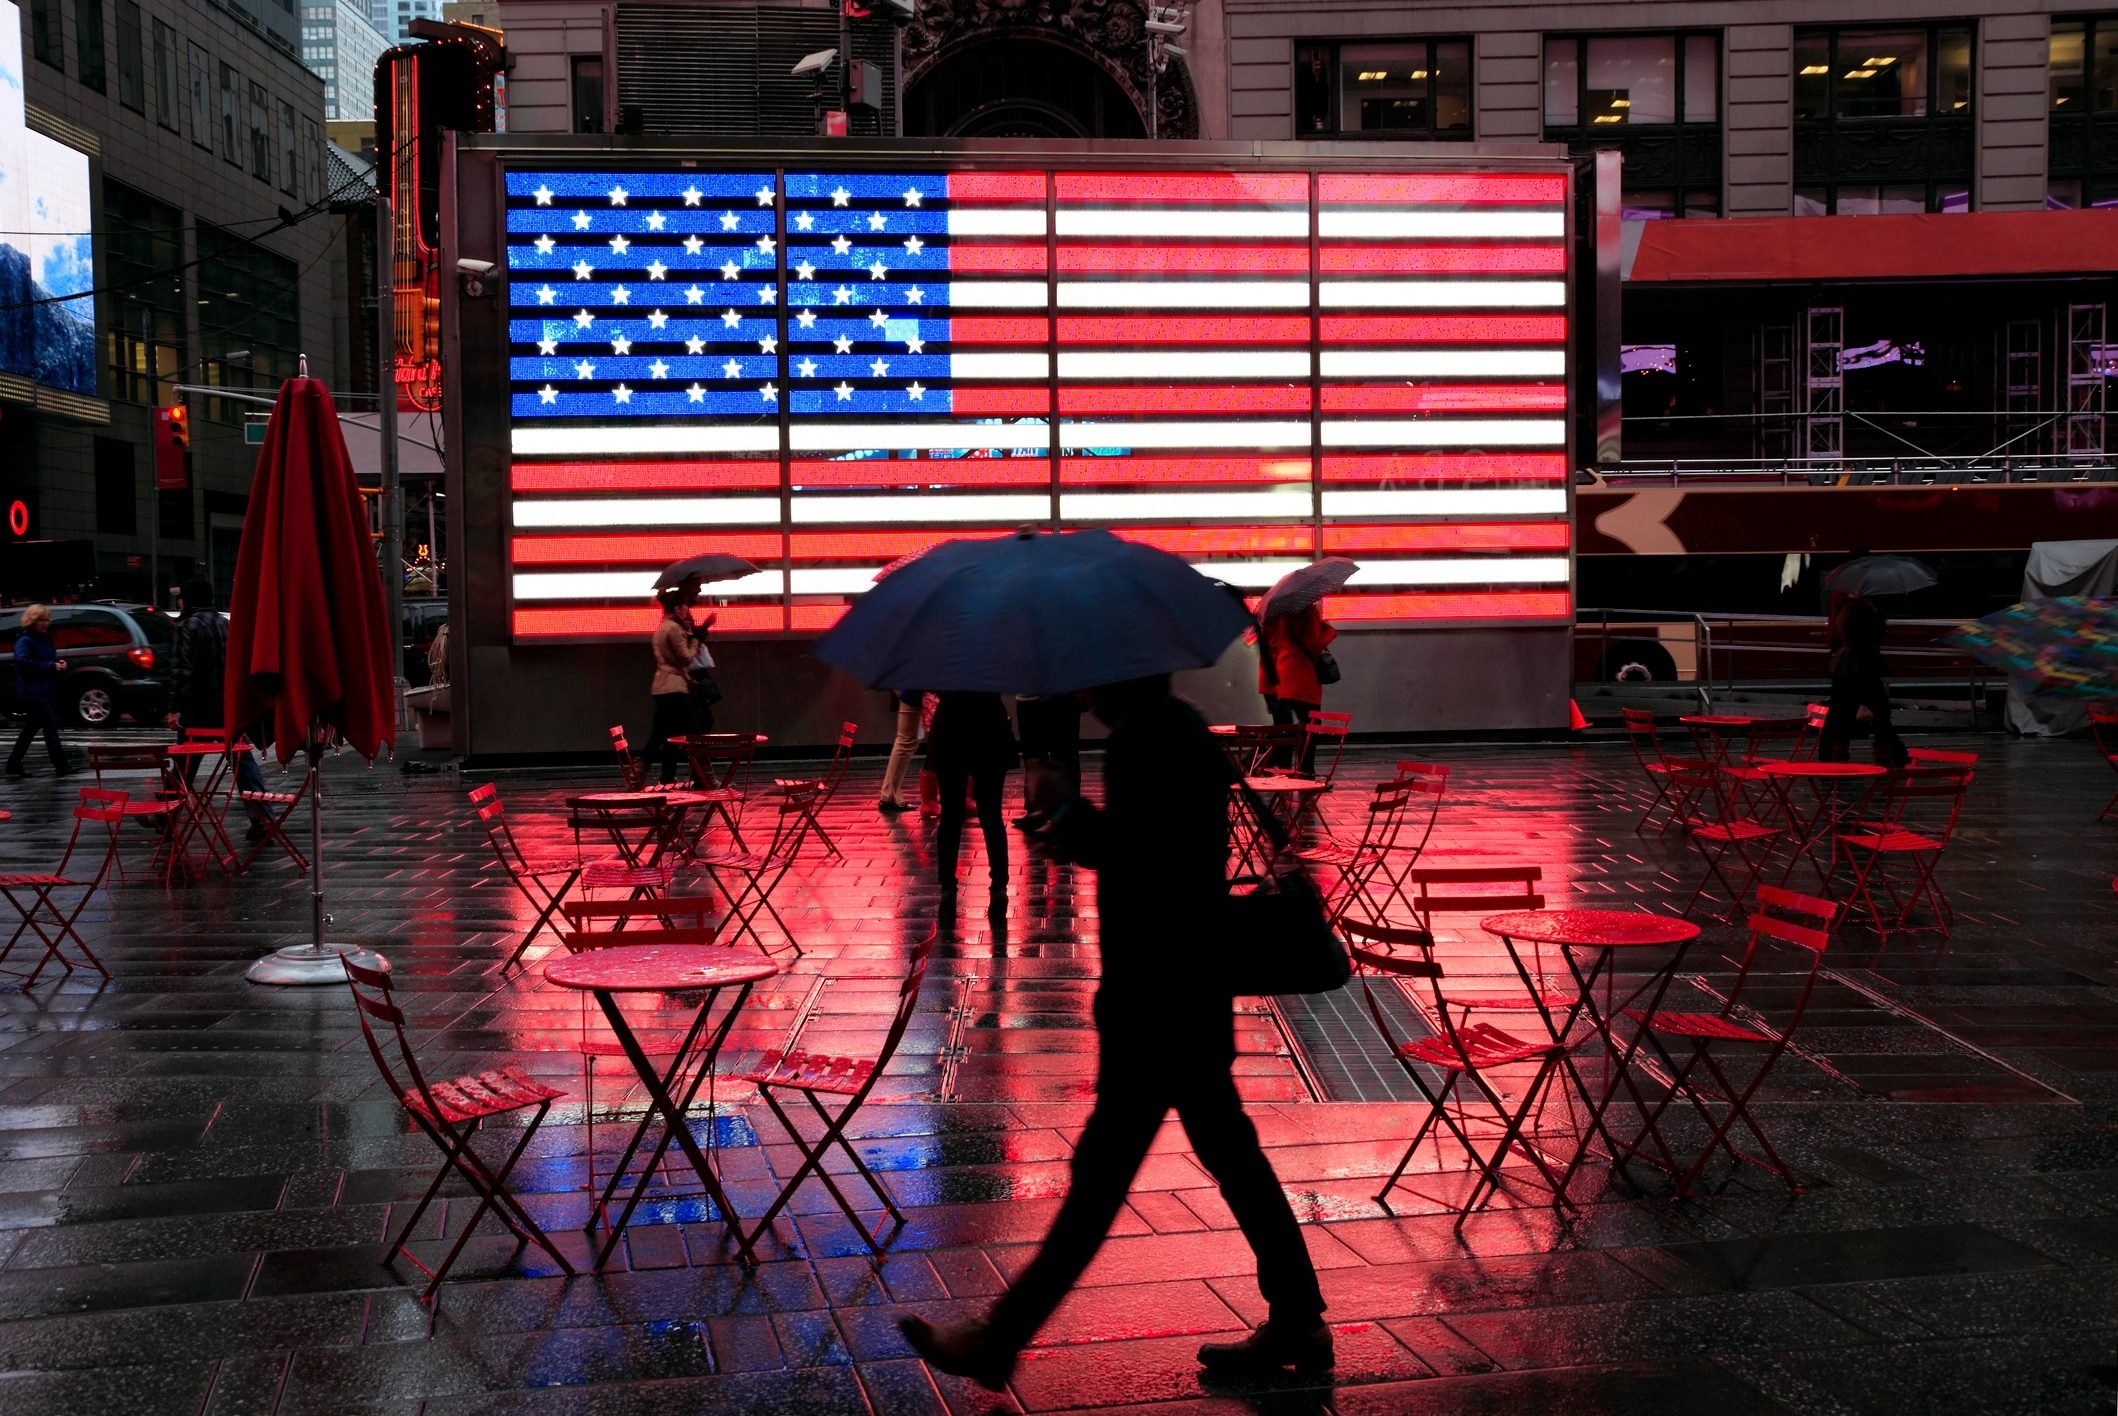 City in the Rain: silhouette of pedestrian with umbrella passing famous LED american flag in wet Times Square